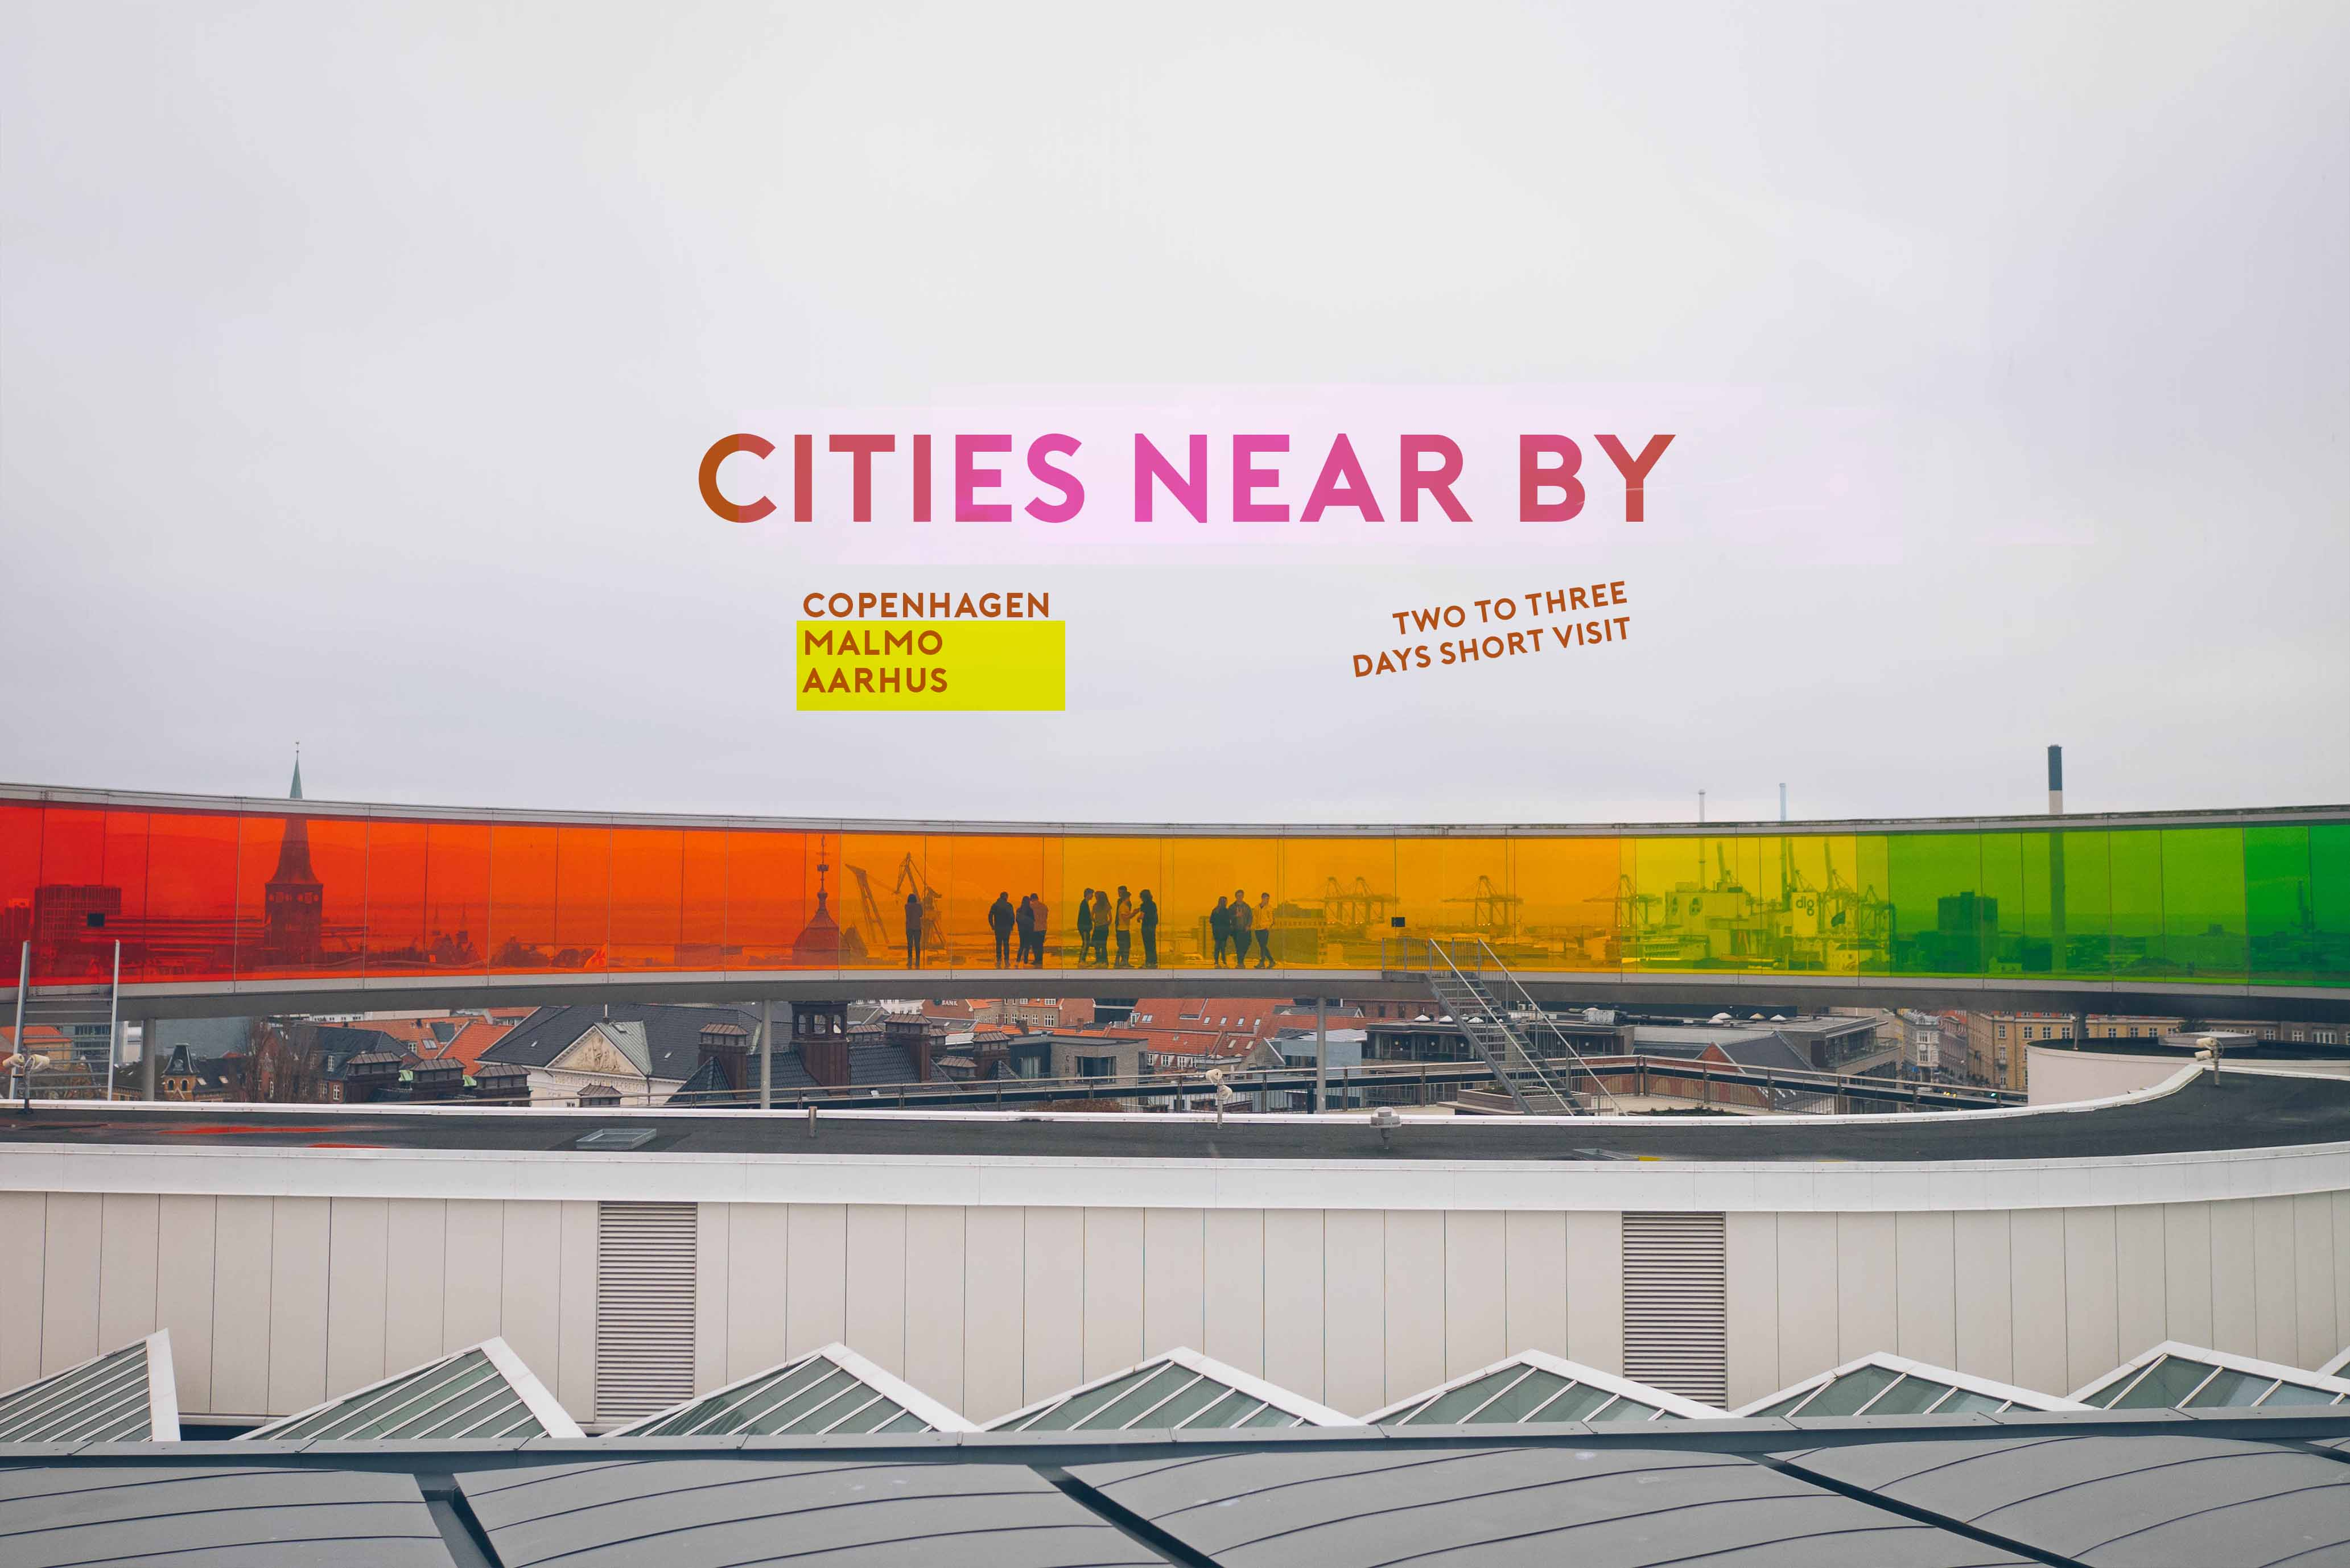 Visit cities near by Copenhagen